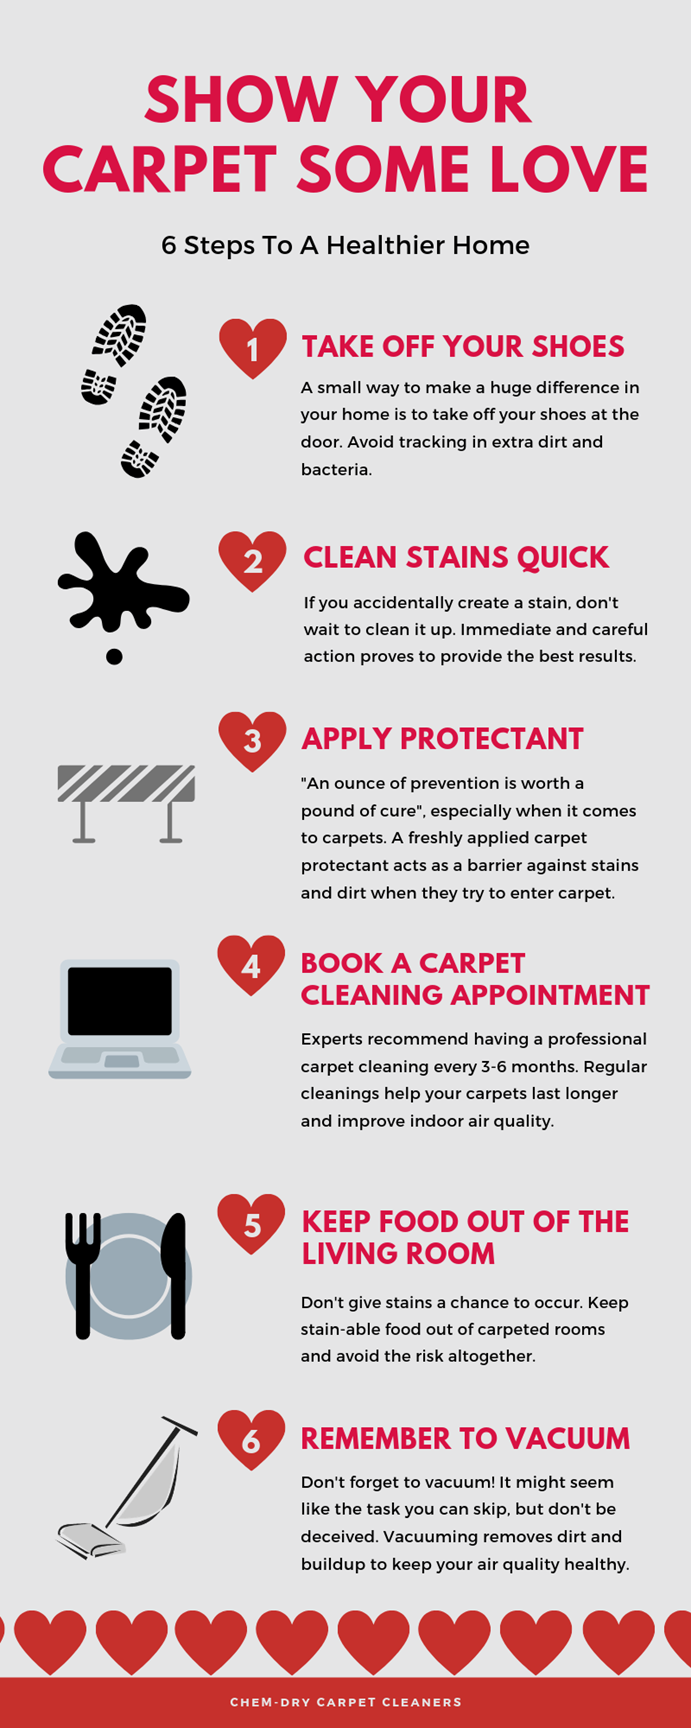 carpet cleaning in Corona CA keep your carpet cleaner with 6 quick tips